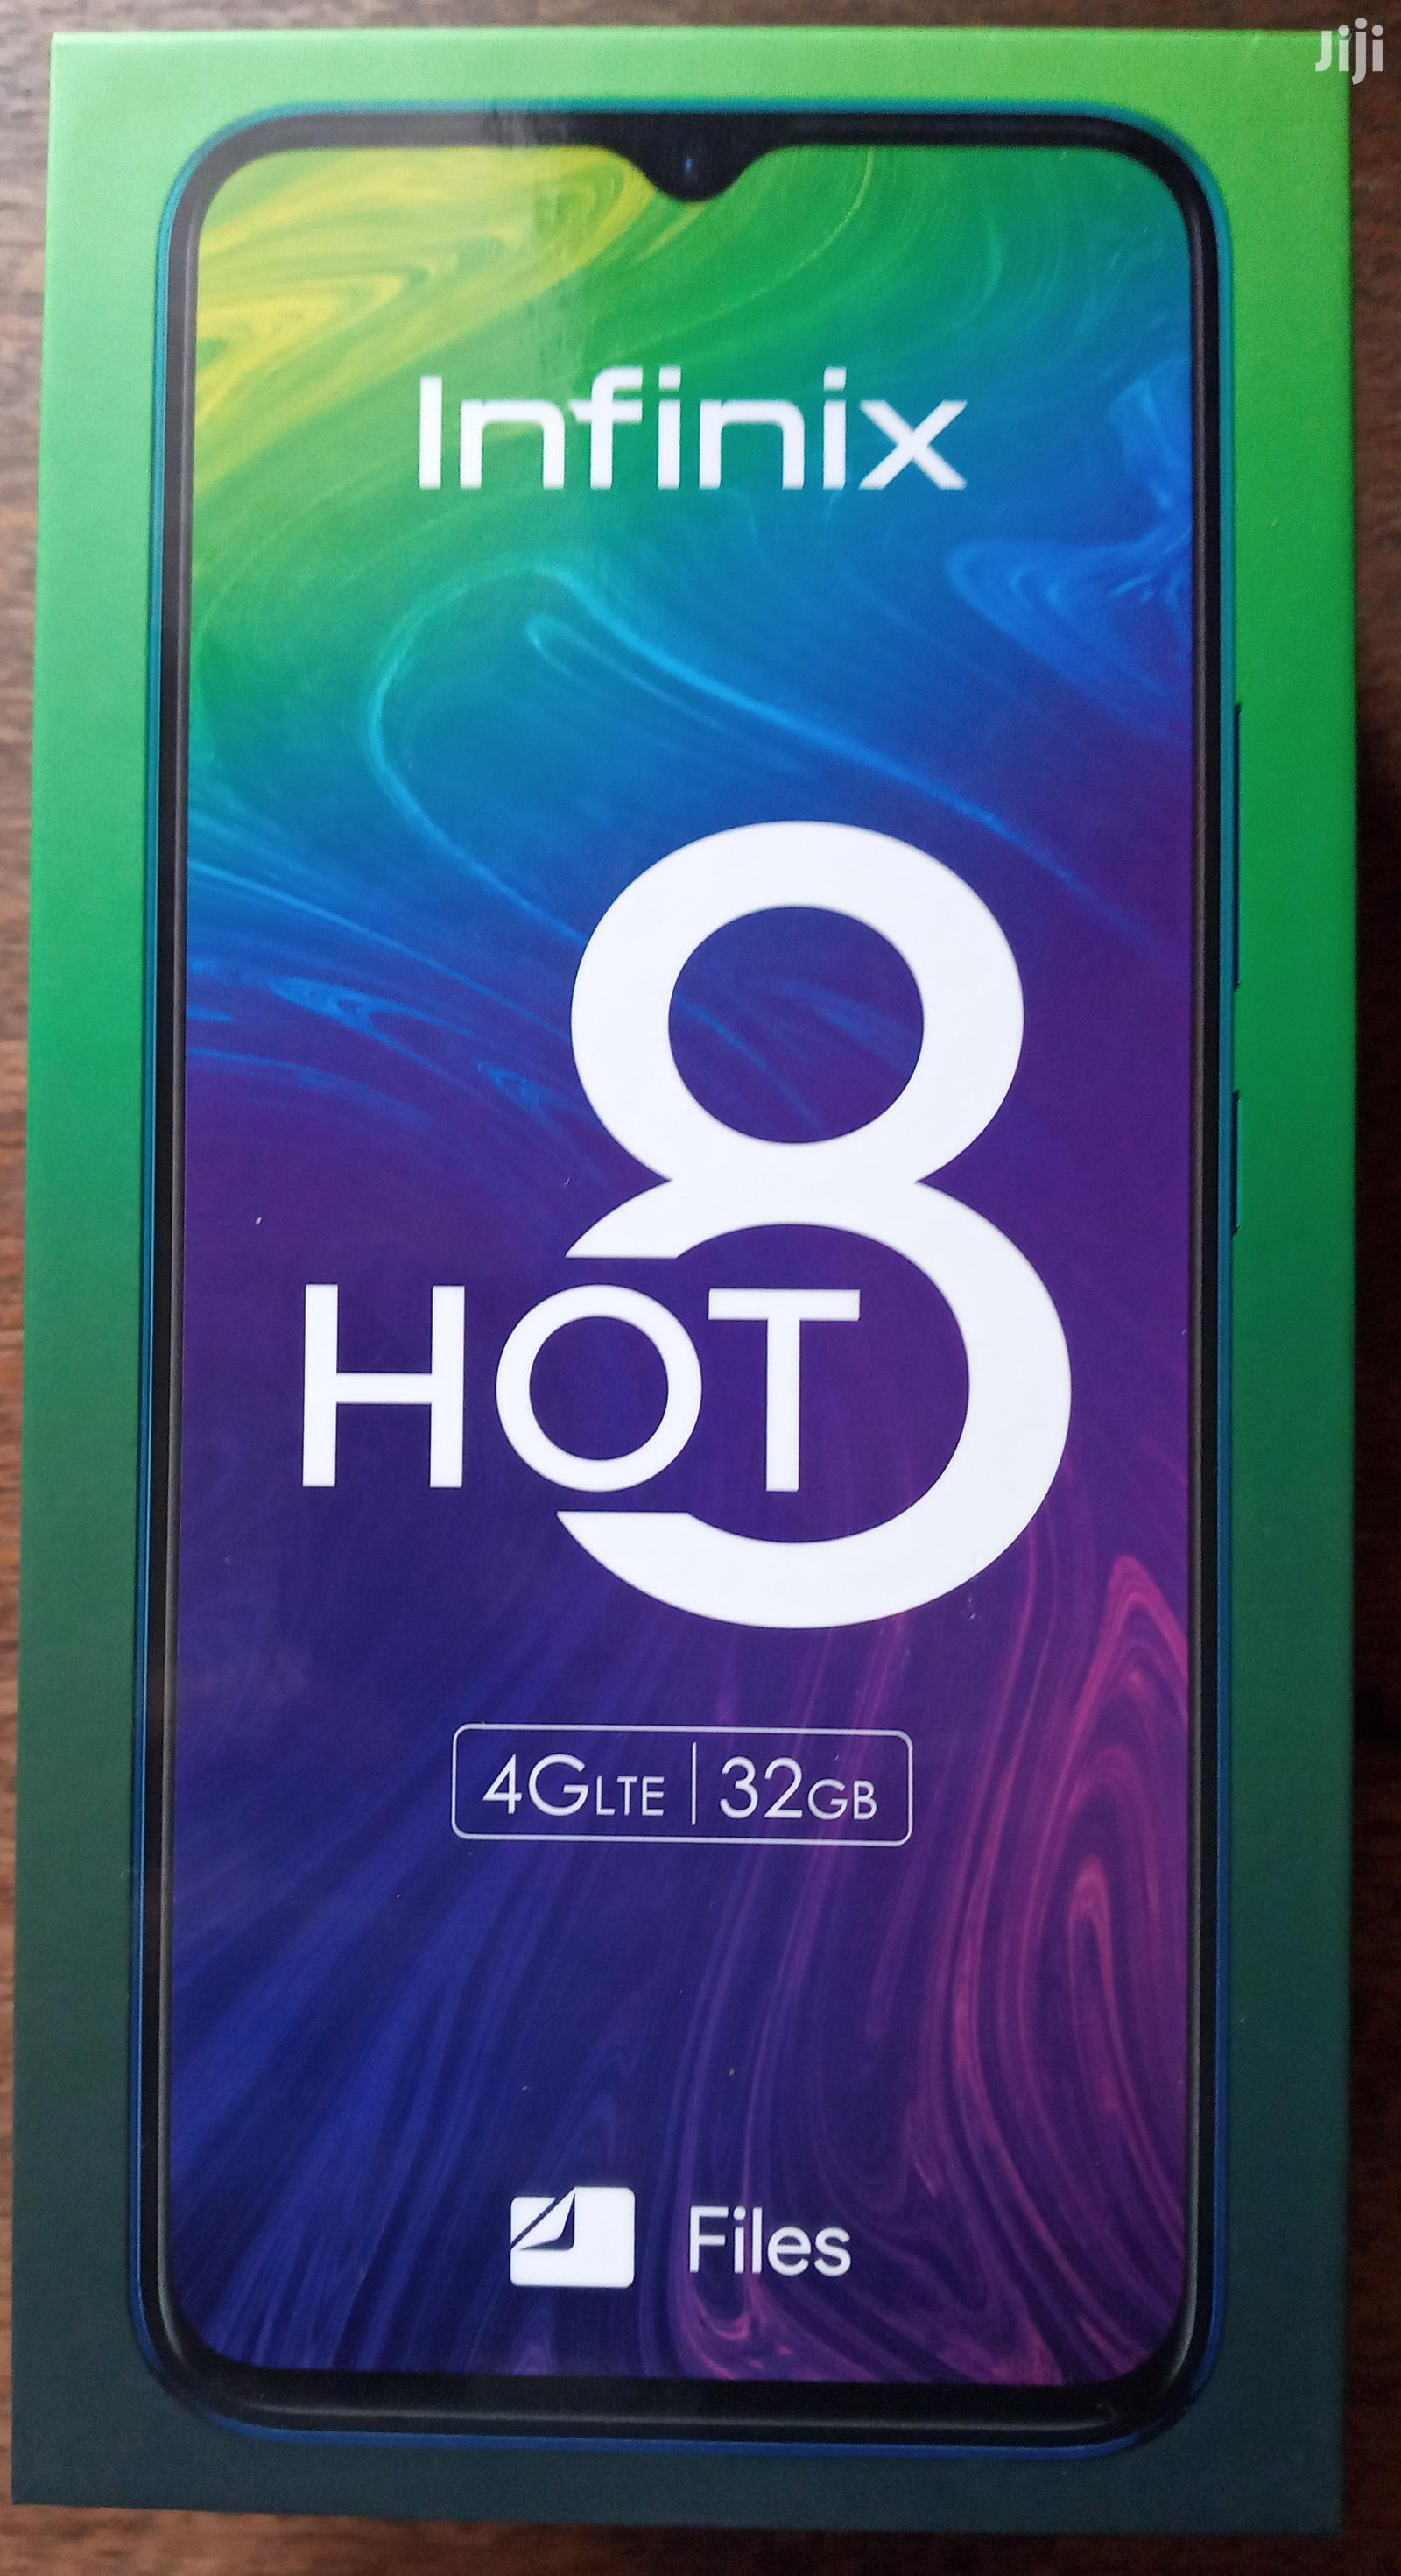 Archive: New Infinix Hot 8 32 GB